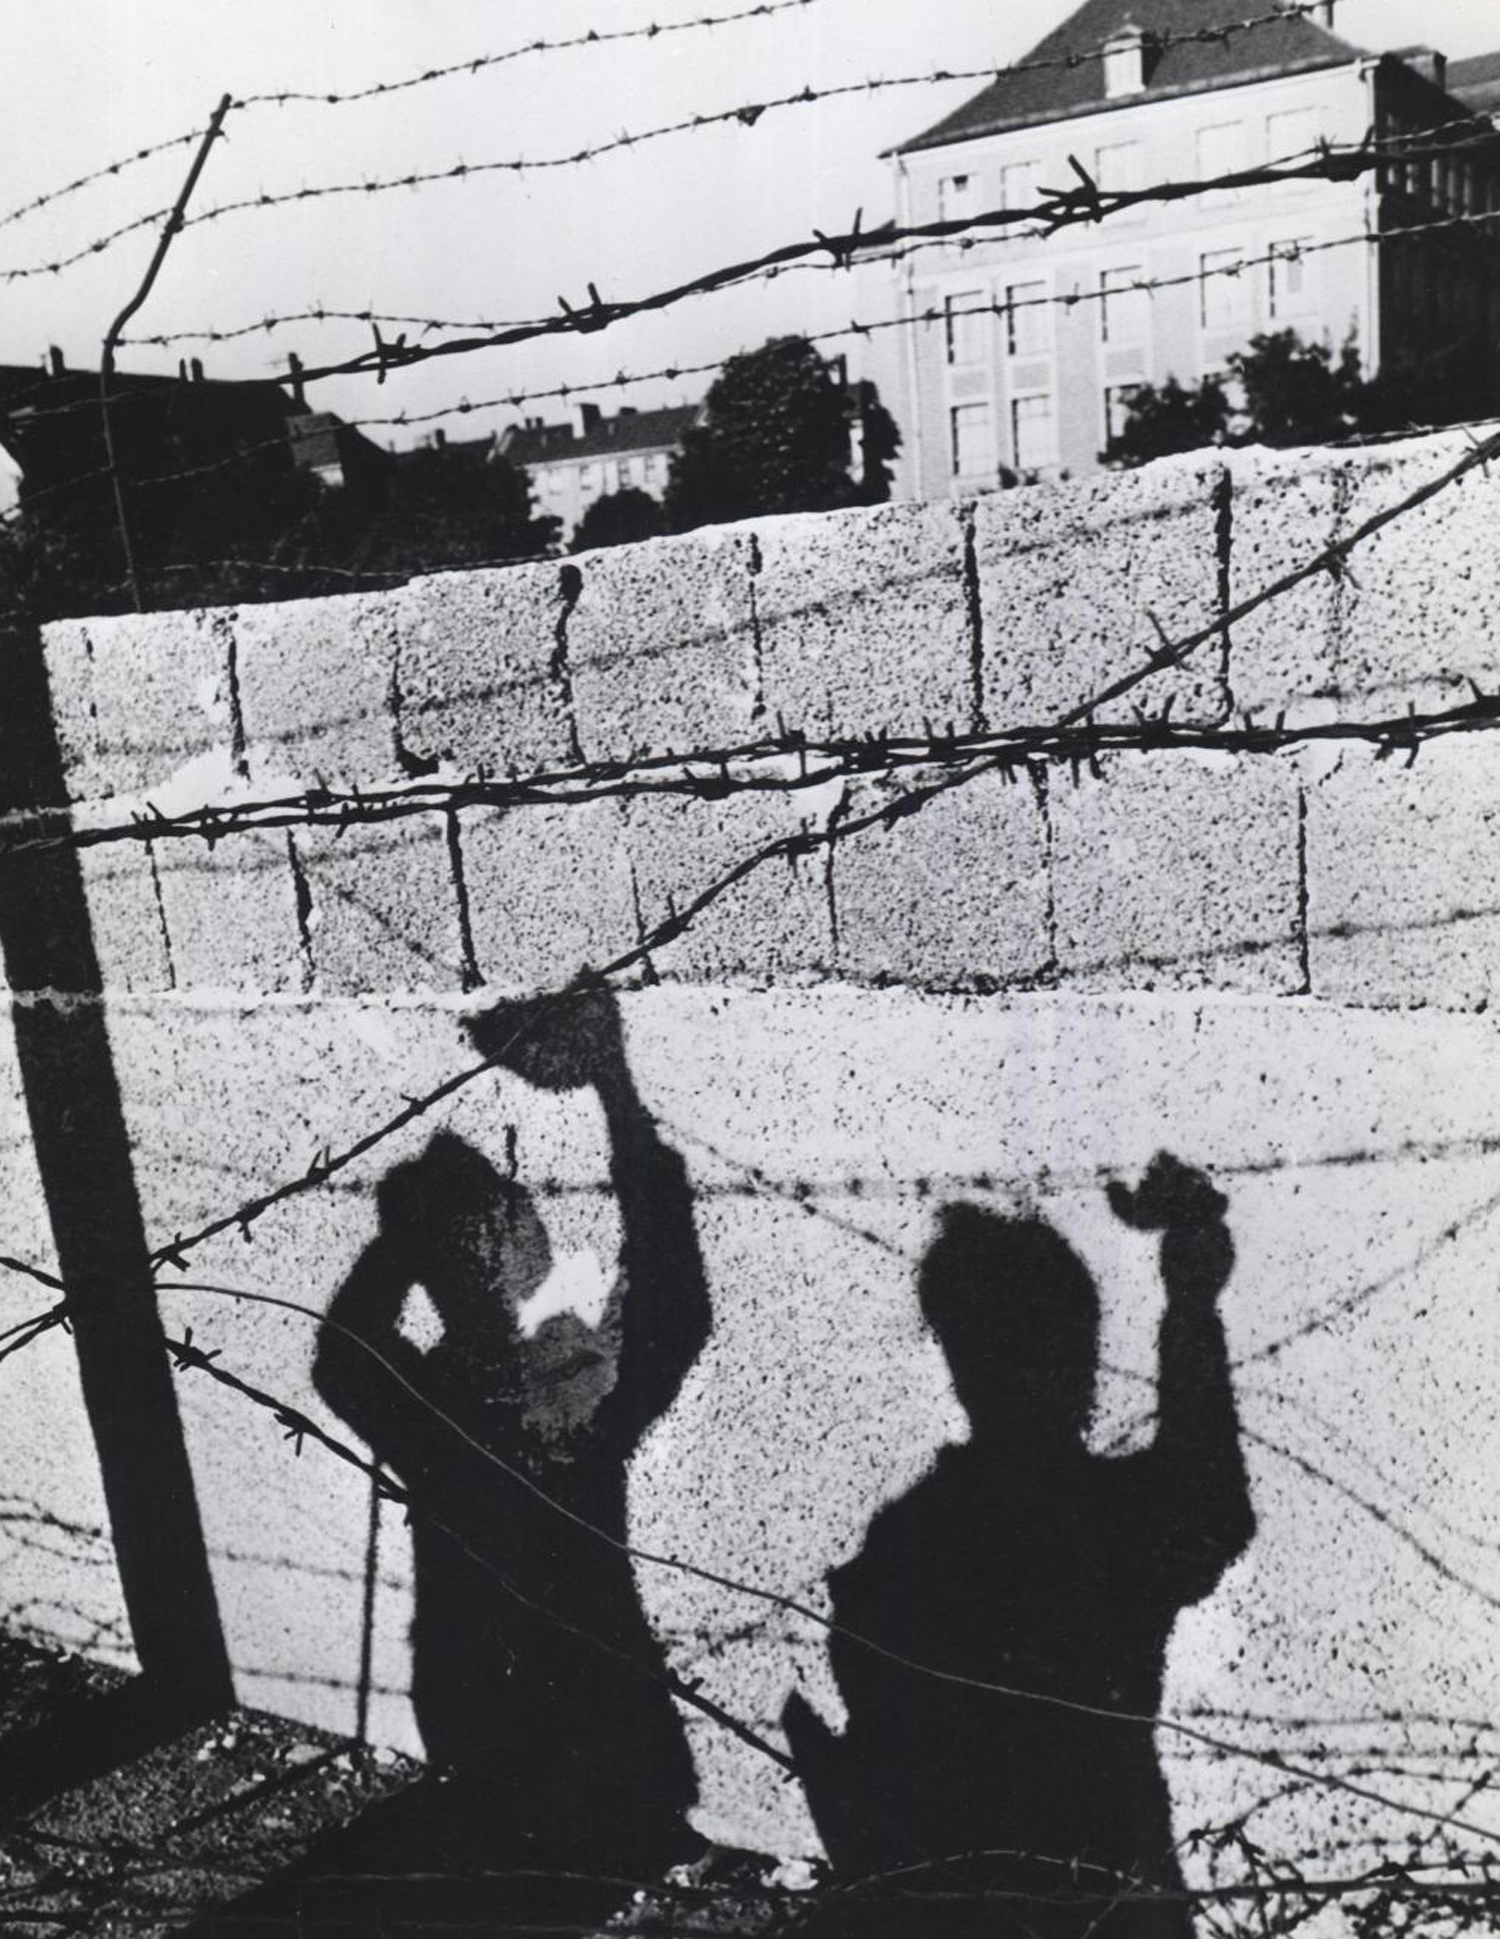 A picture is worth a thousand words: In October 1961, the shadows of two West Berliners waving to friends across the East-West border fall symbolically upon the concrete of the newly-built wall in a frame of barbed wire. Photo: U.S. Information Agency.